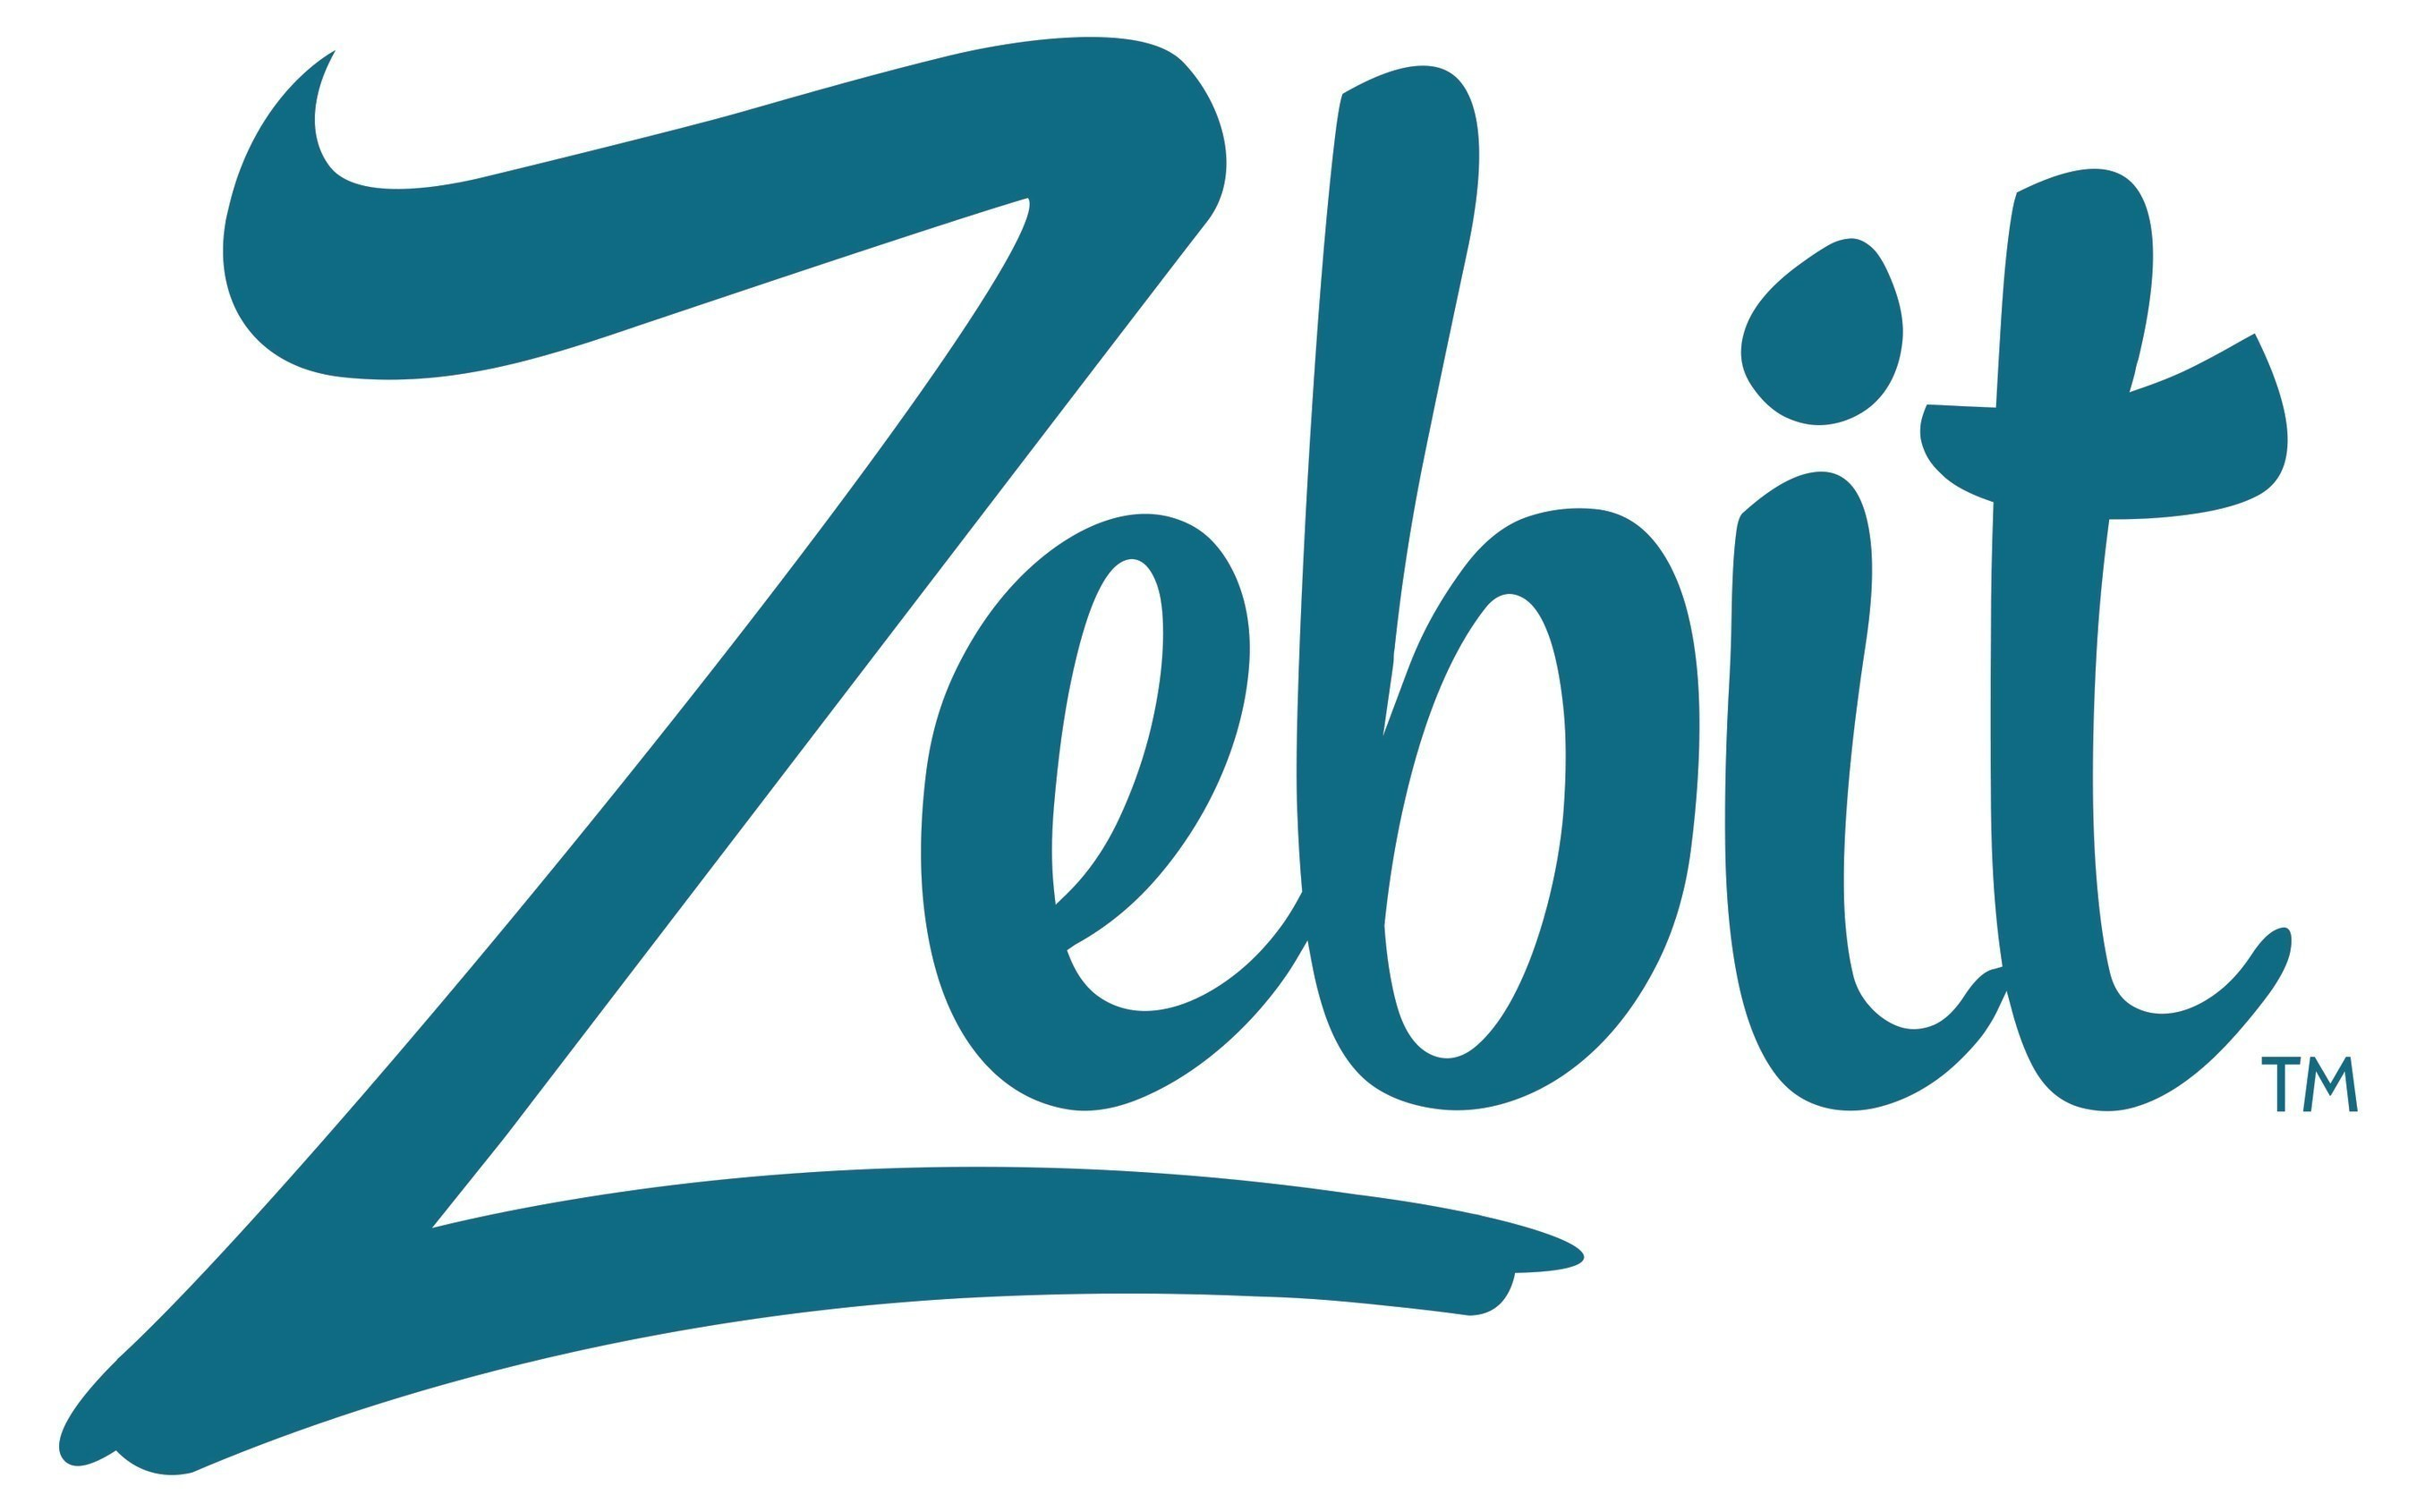 Zebit Launches To Provide No-Cost Financing To The Underserved; Secures $10 Million In Venture Capital